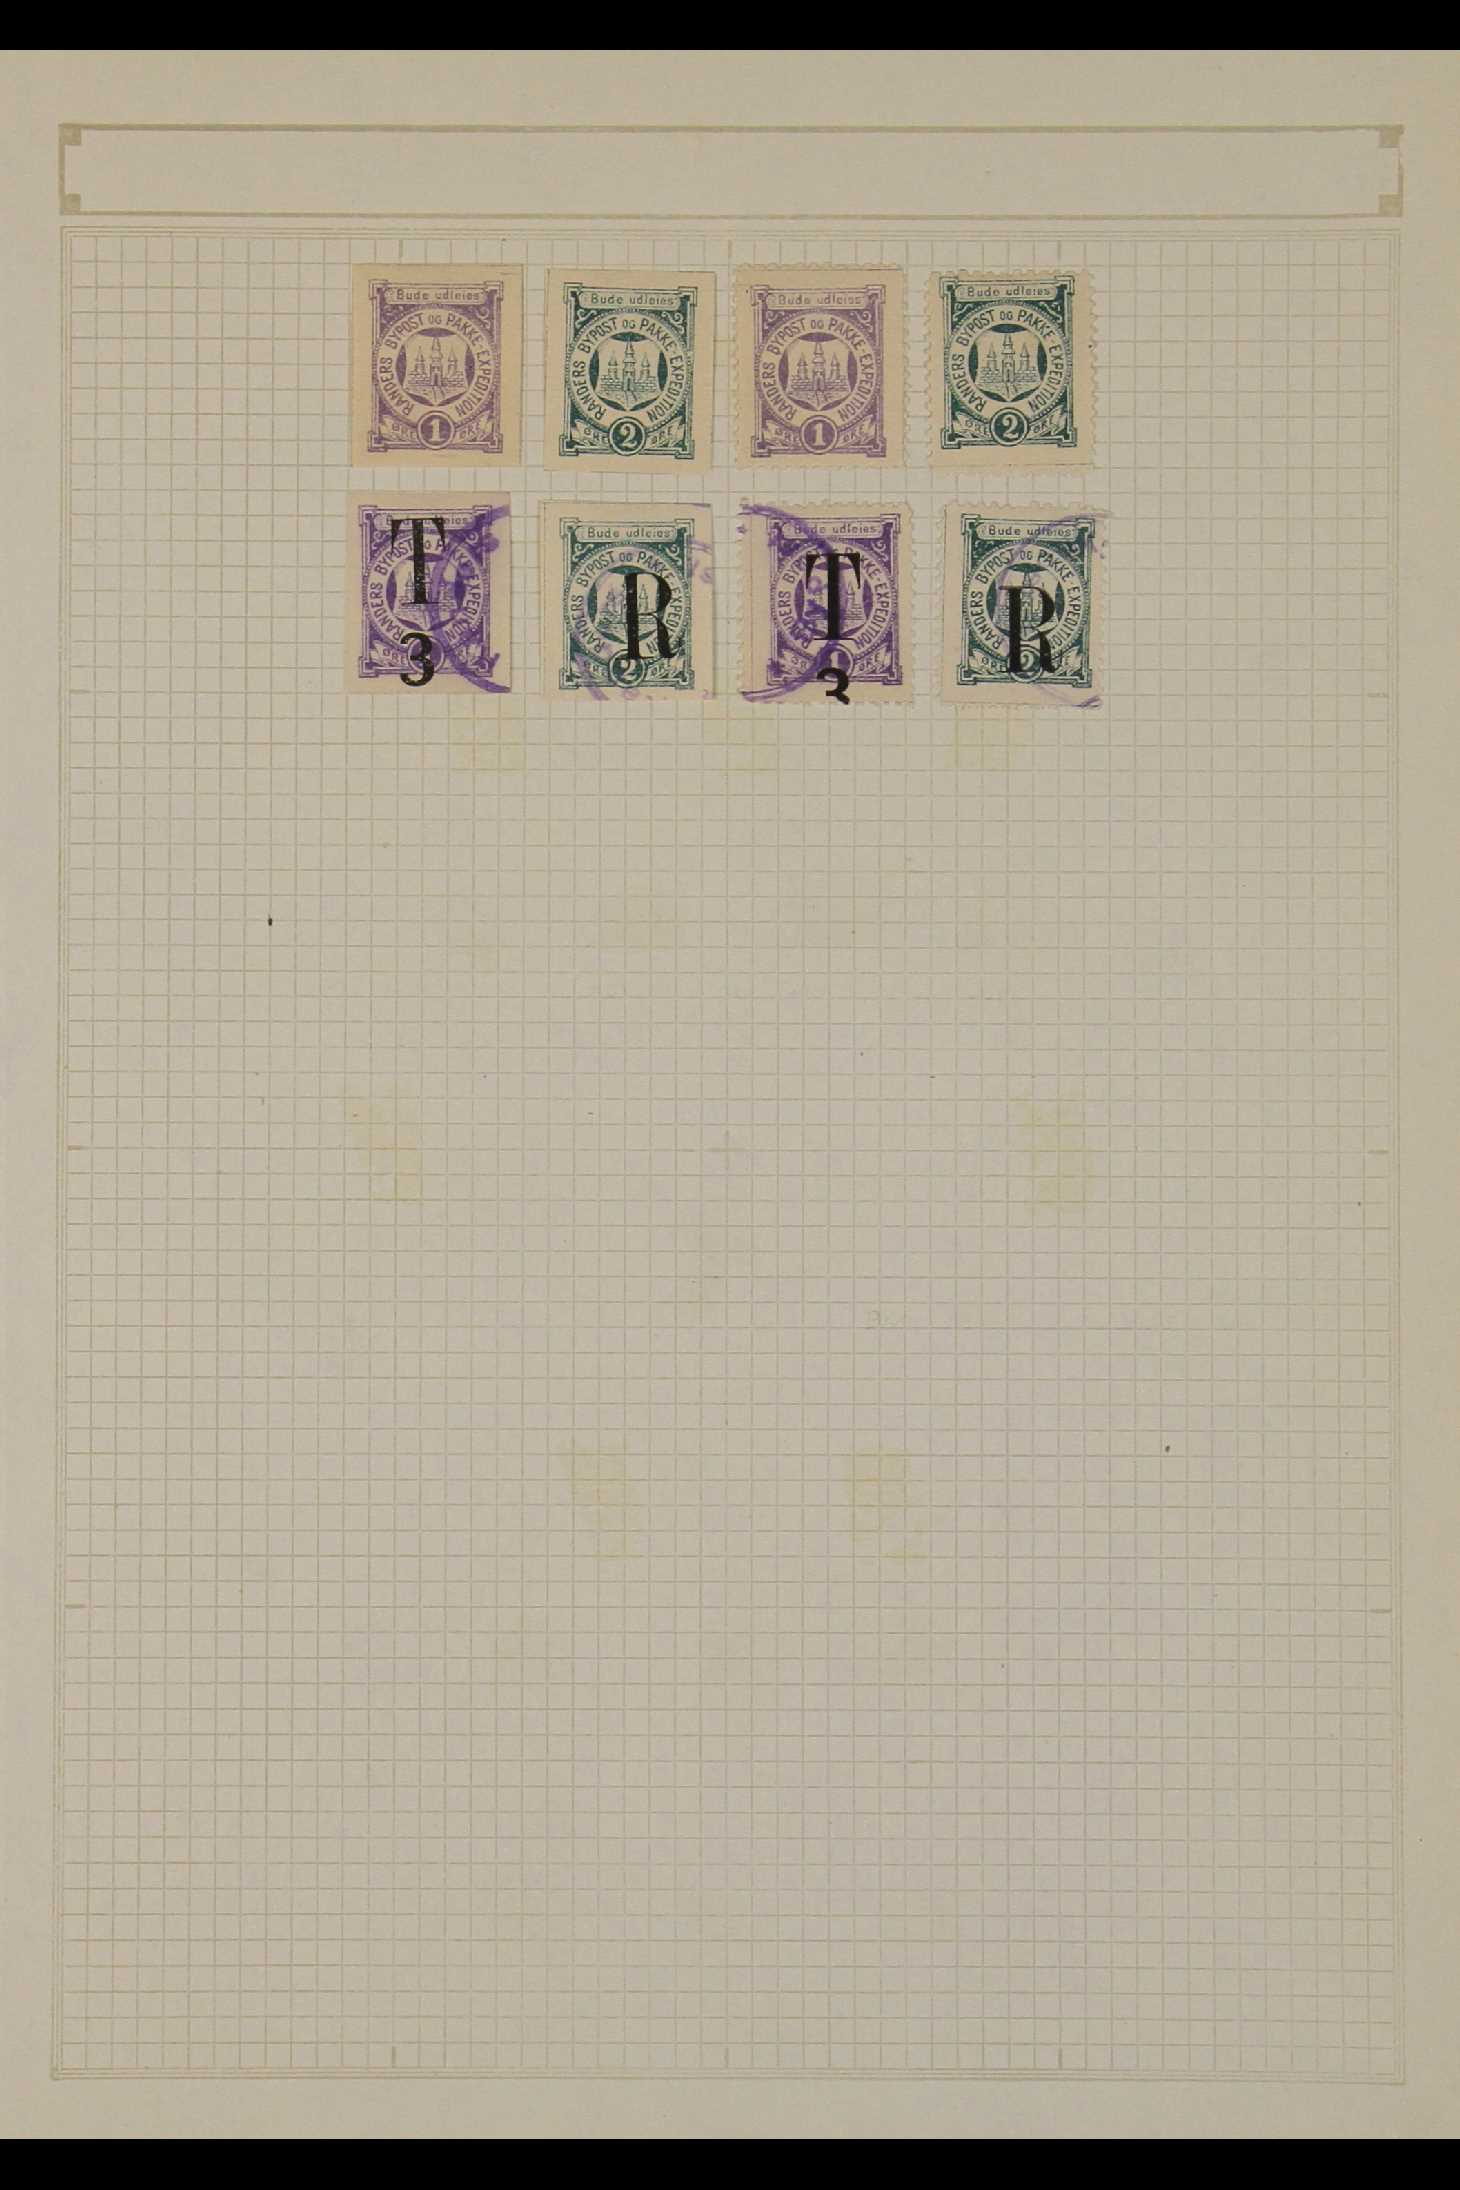 DENMARK LOCAL POST STAMPS - RANDERS 1885-89. MINT & USED ranges incl. inverted surcharges, - Image 4 of 4